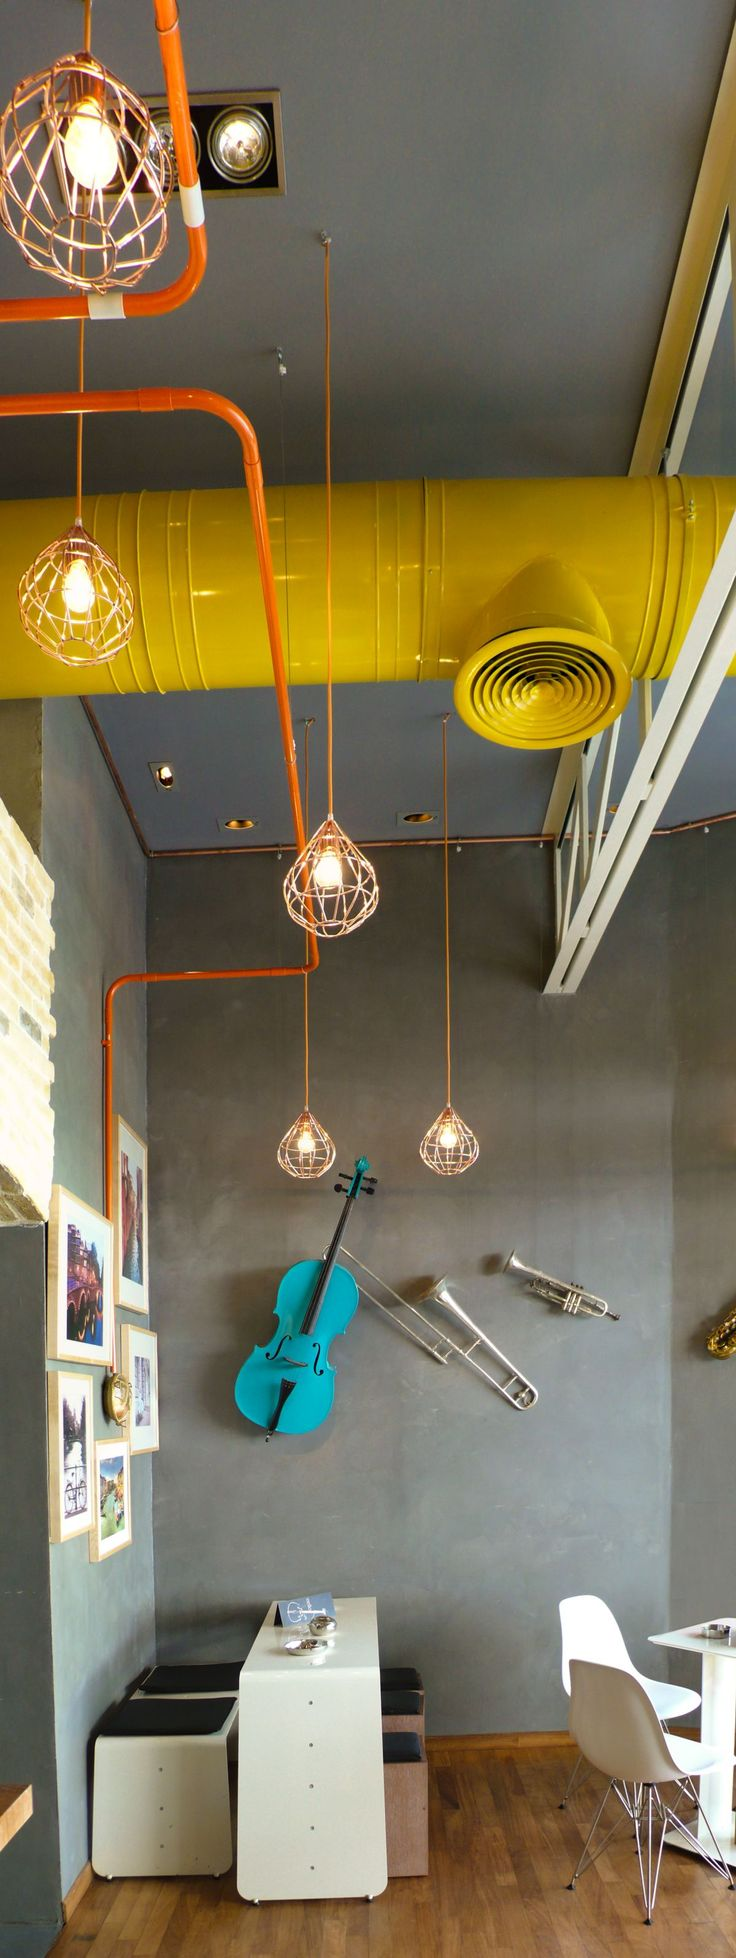 Home Decorating Diy Projects Classic Lighting Design In